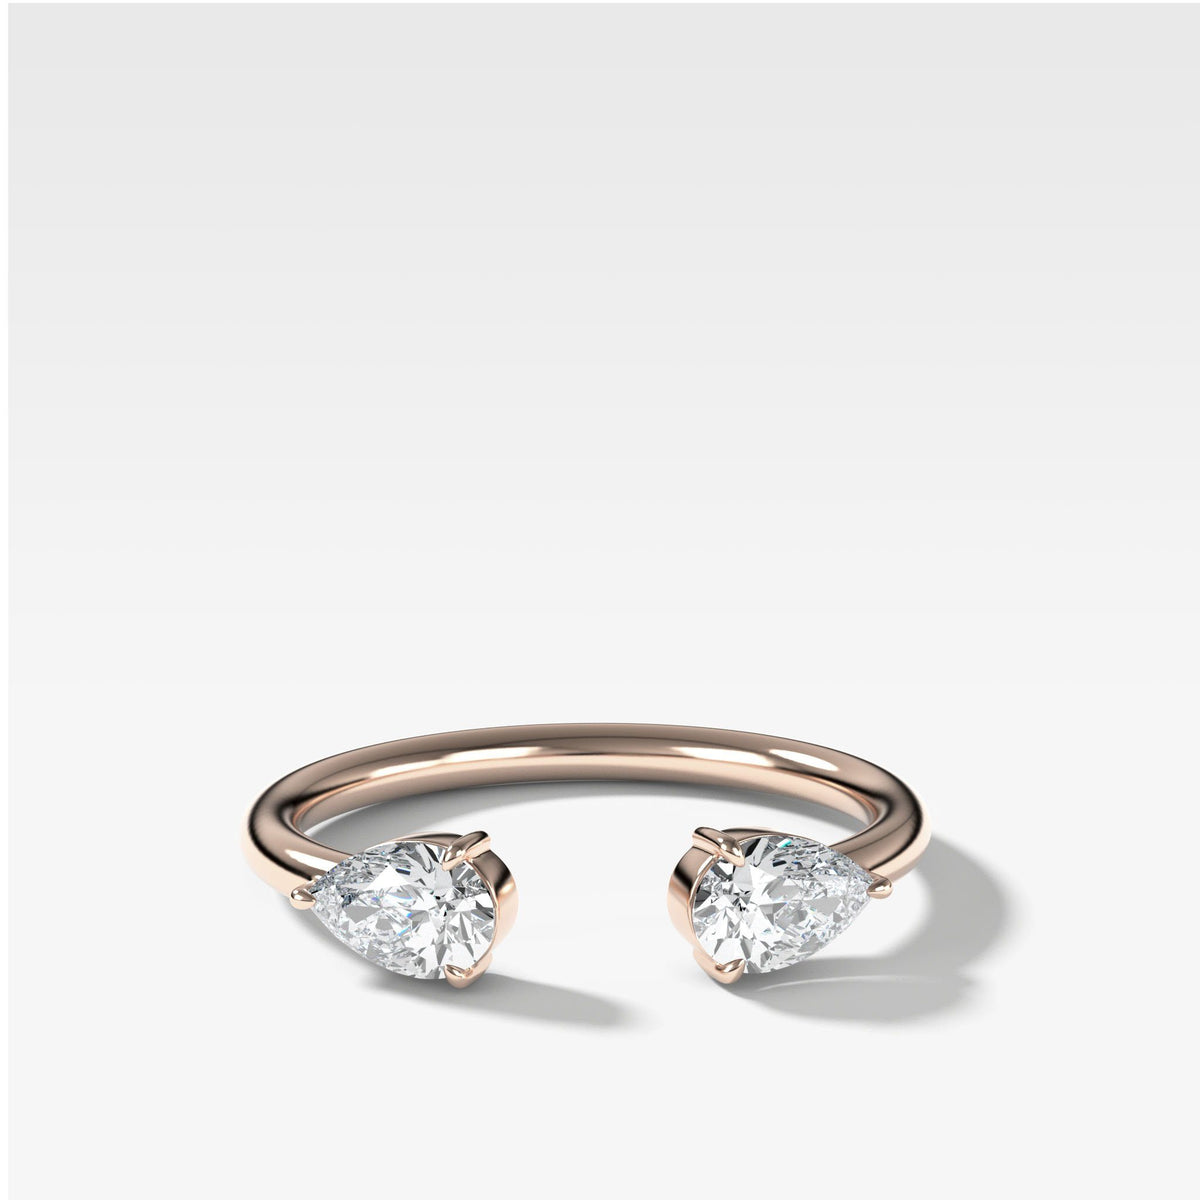 Twin Pear Diamond Finger Cuff in Rose Gold by Good Stone